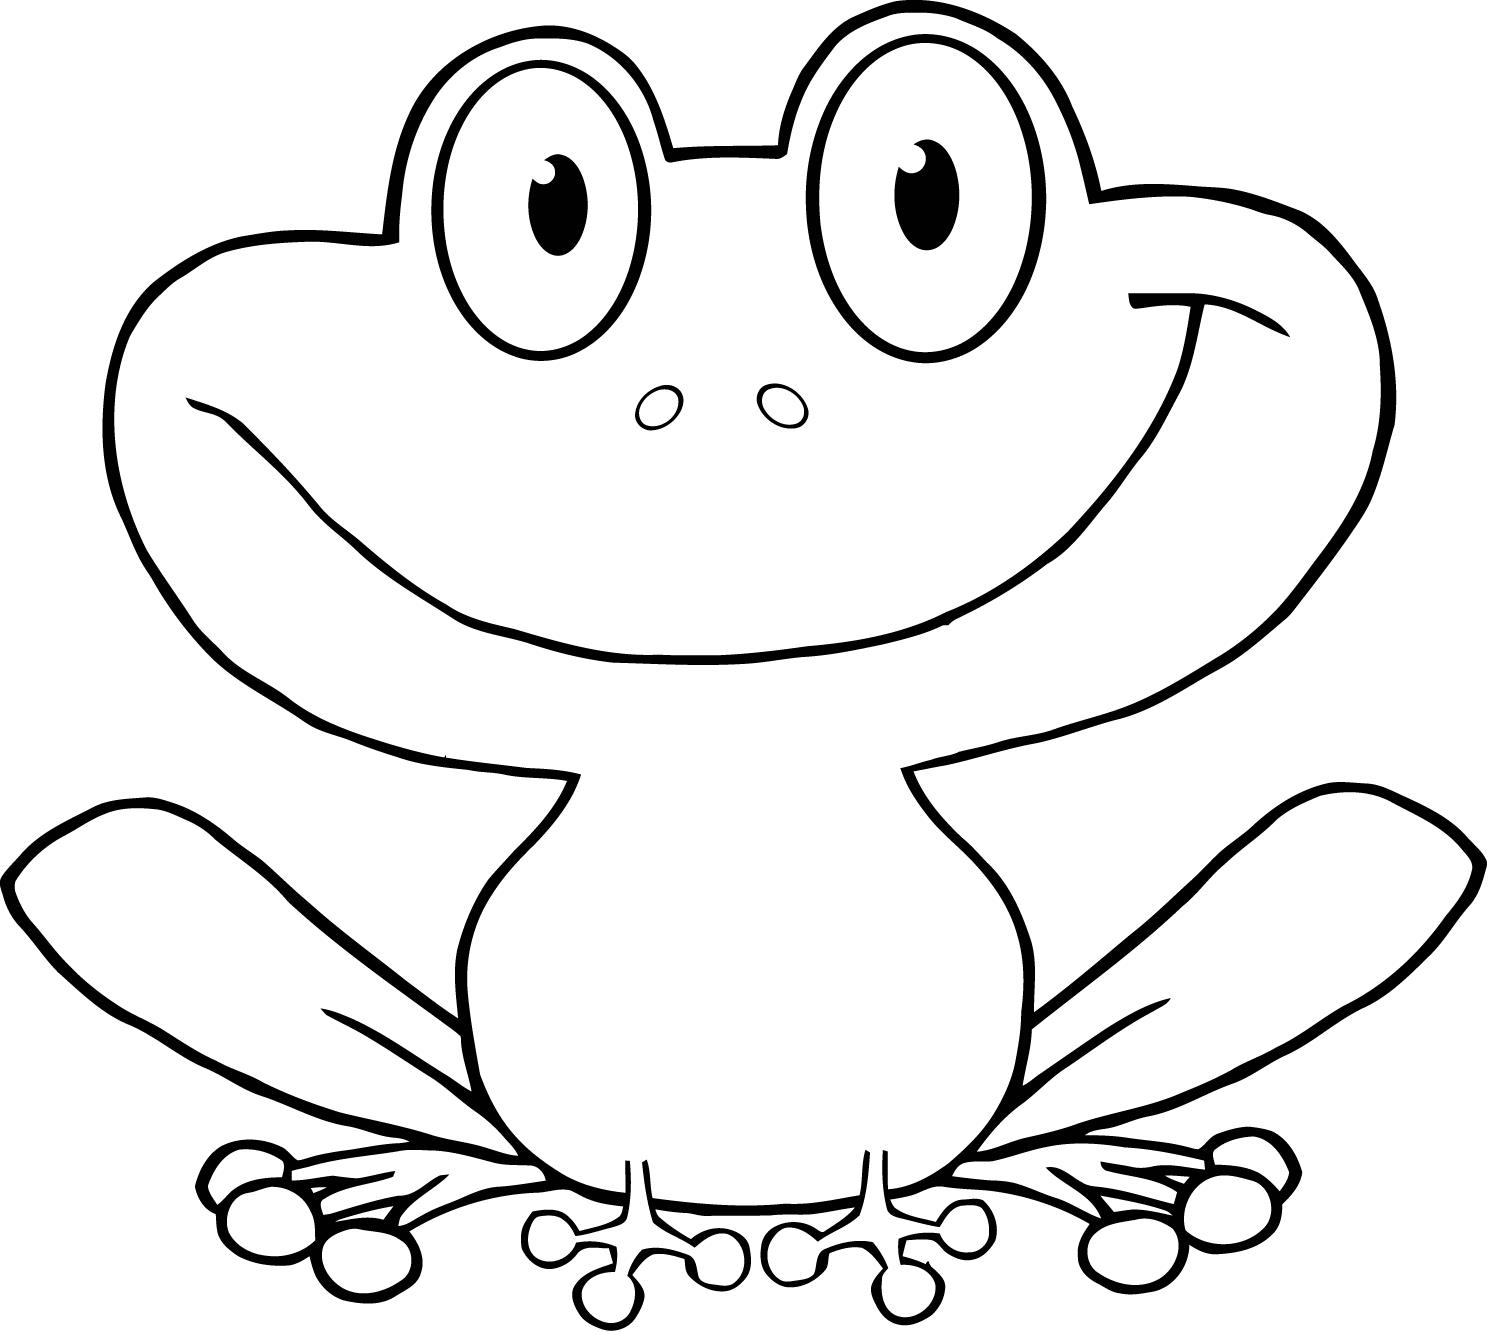 1488x1332 Cartoon Frog Drawing How To Draw Kermit The Frog 11 Steps (With